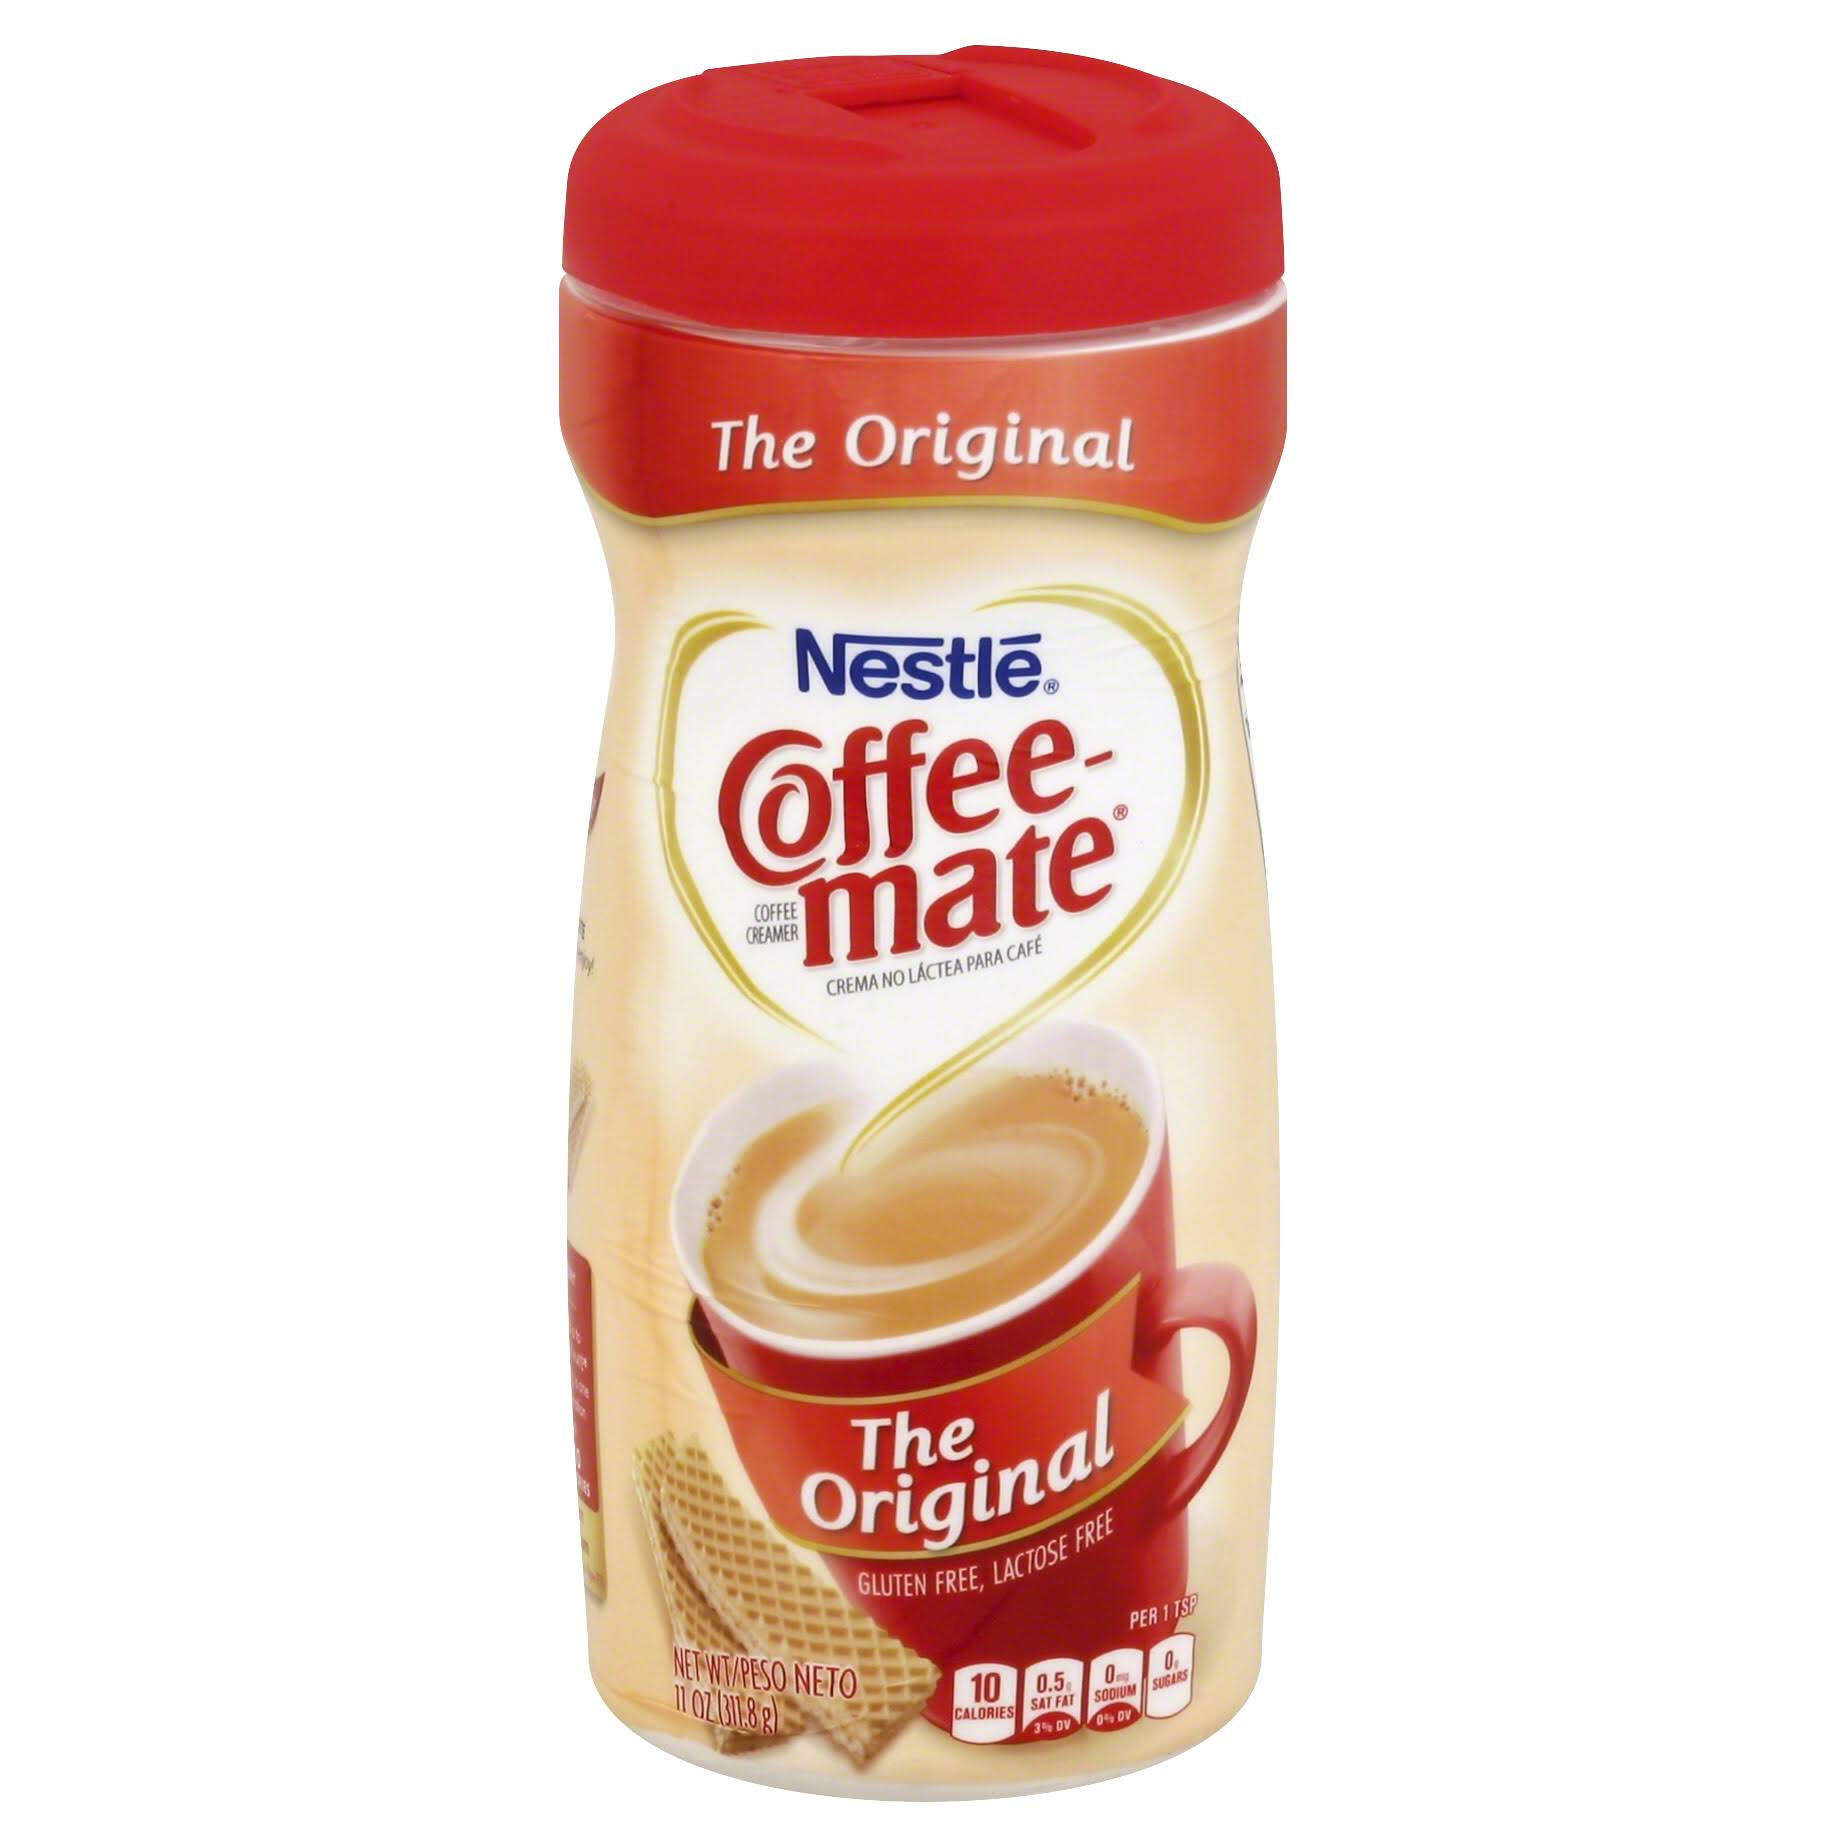 Nestle Coffee-mate Coffee Creamer - Original, 11oz Jar